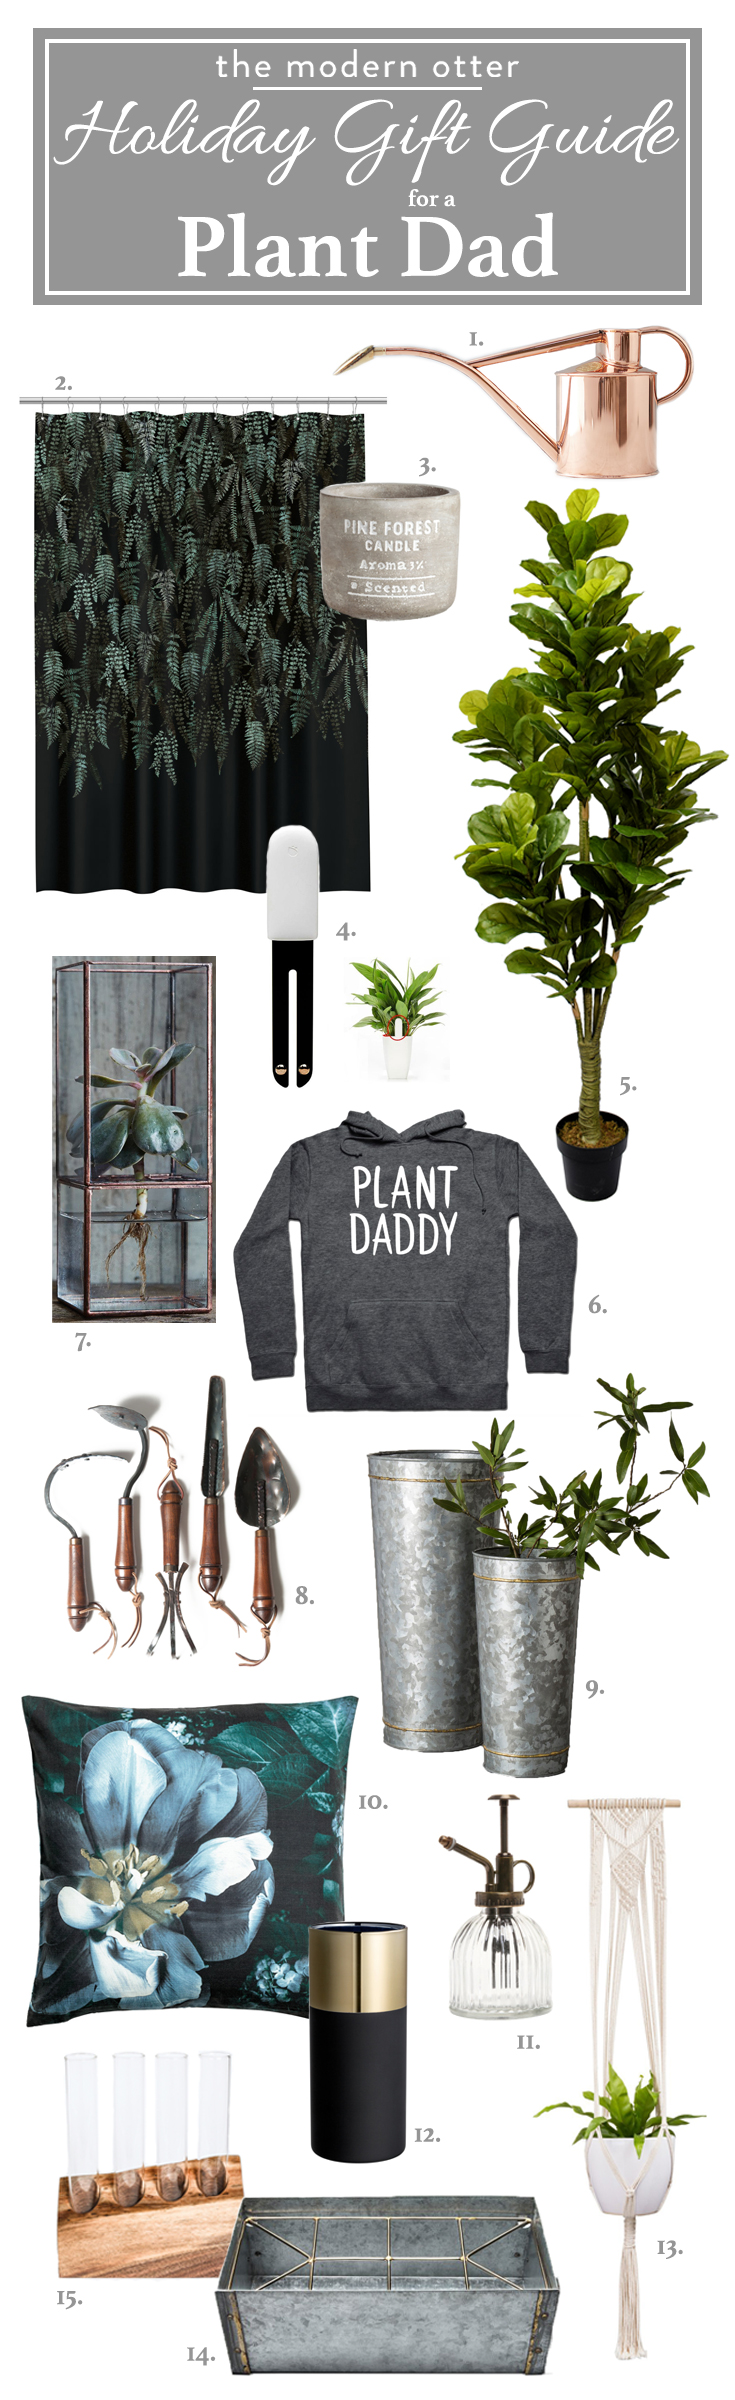 The Modern Otter Holiday Gift Guide for A Plant Dad